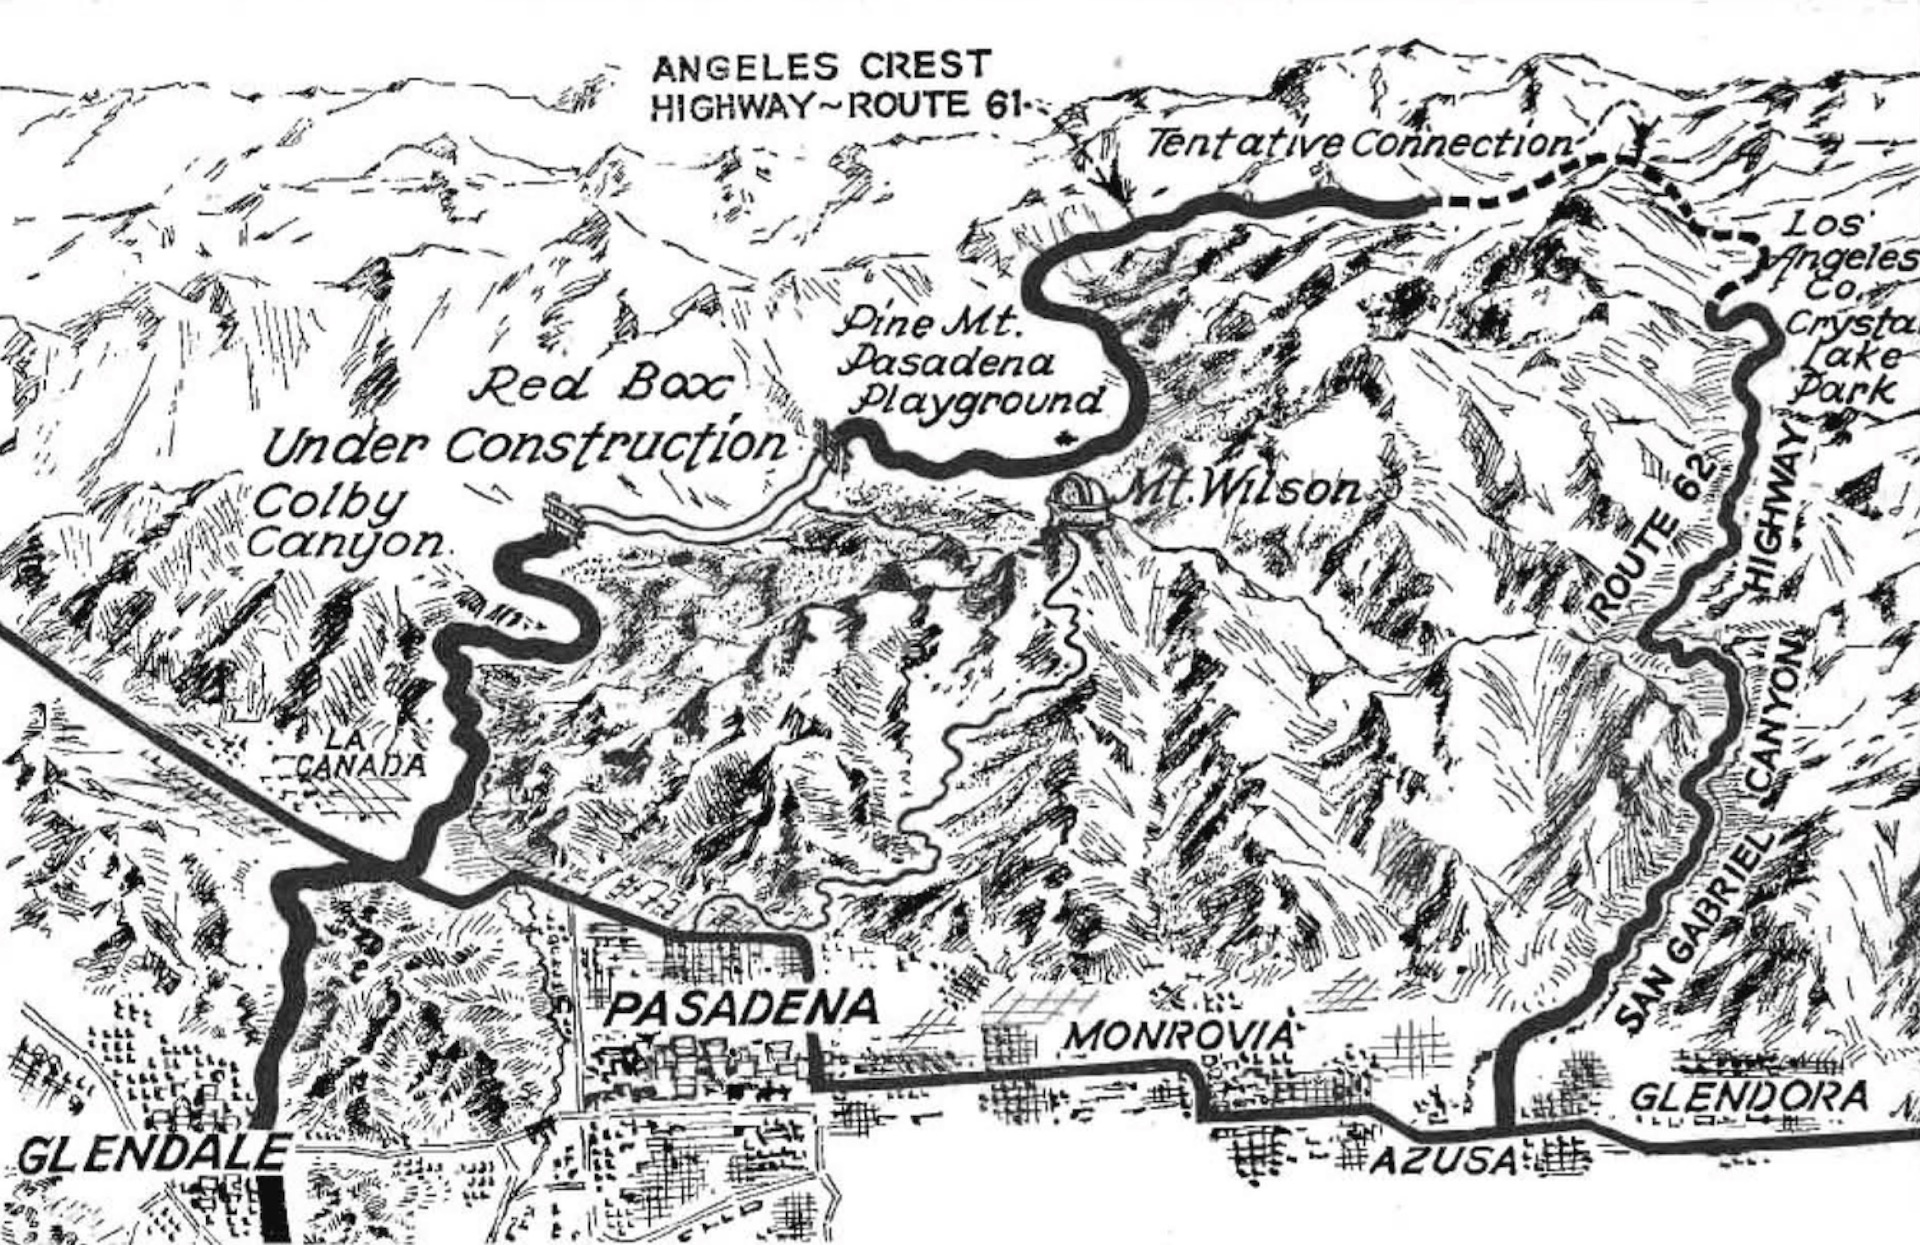 Map of the Angeles Crest Highway, 1934